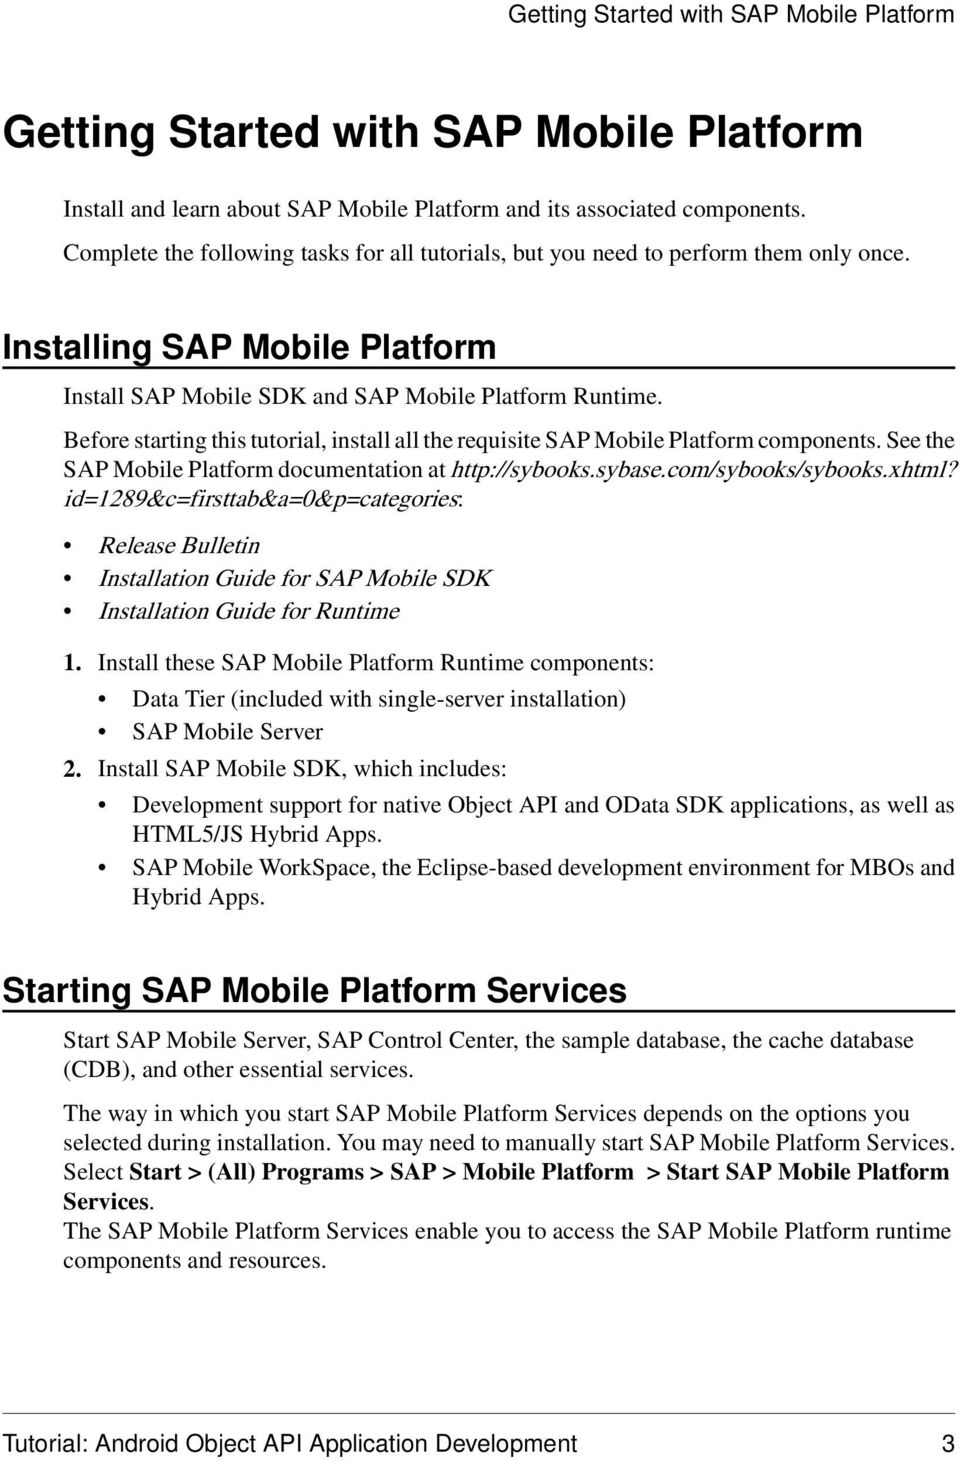 Before starting this tutorial, install all the requisite SAP Mobile Platform components. See the SAP Mobile Platform documentation at http://sybooks.sybase.com/sybooks/sybooks.xhtml?